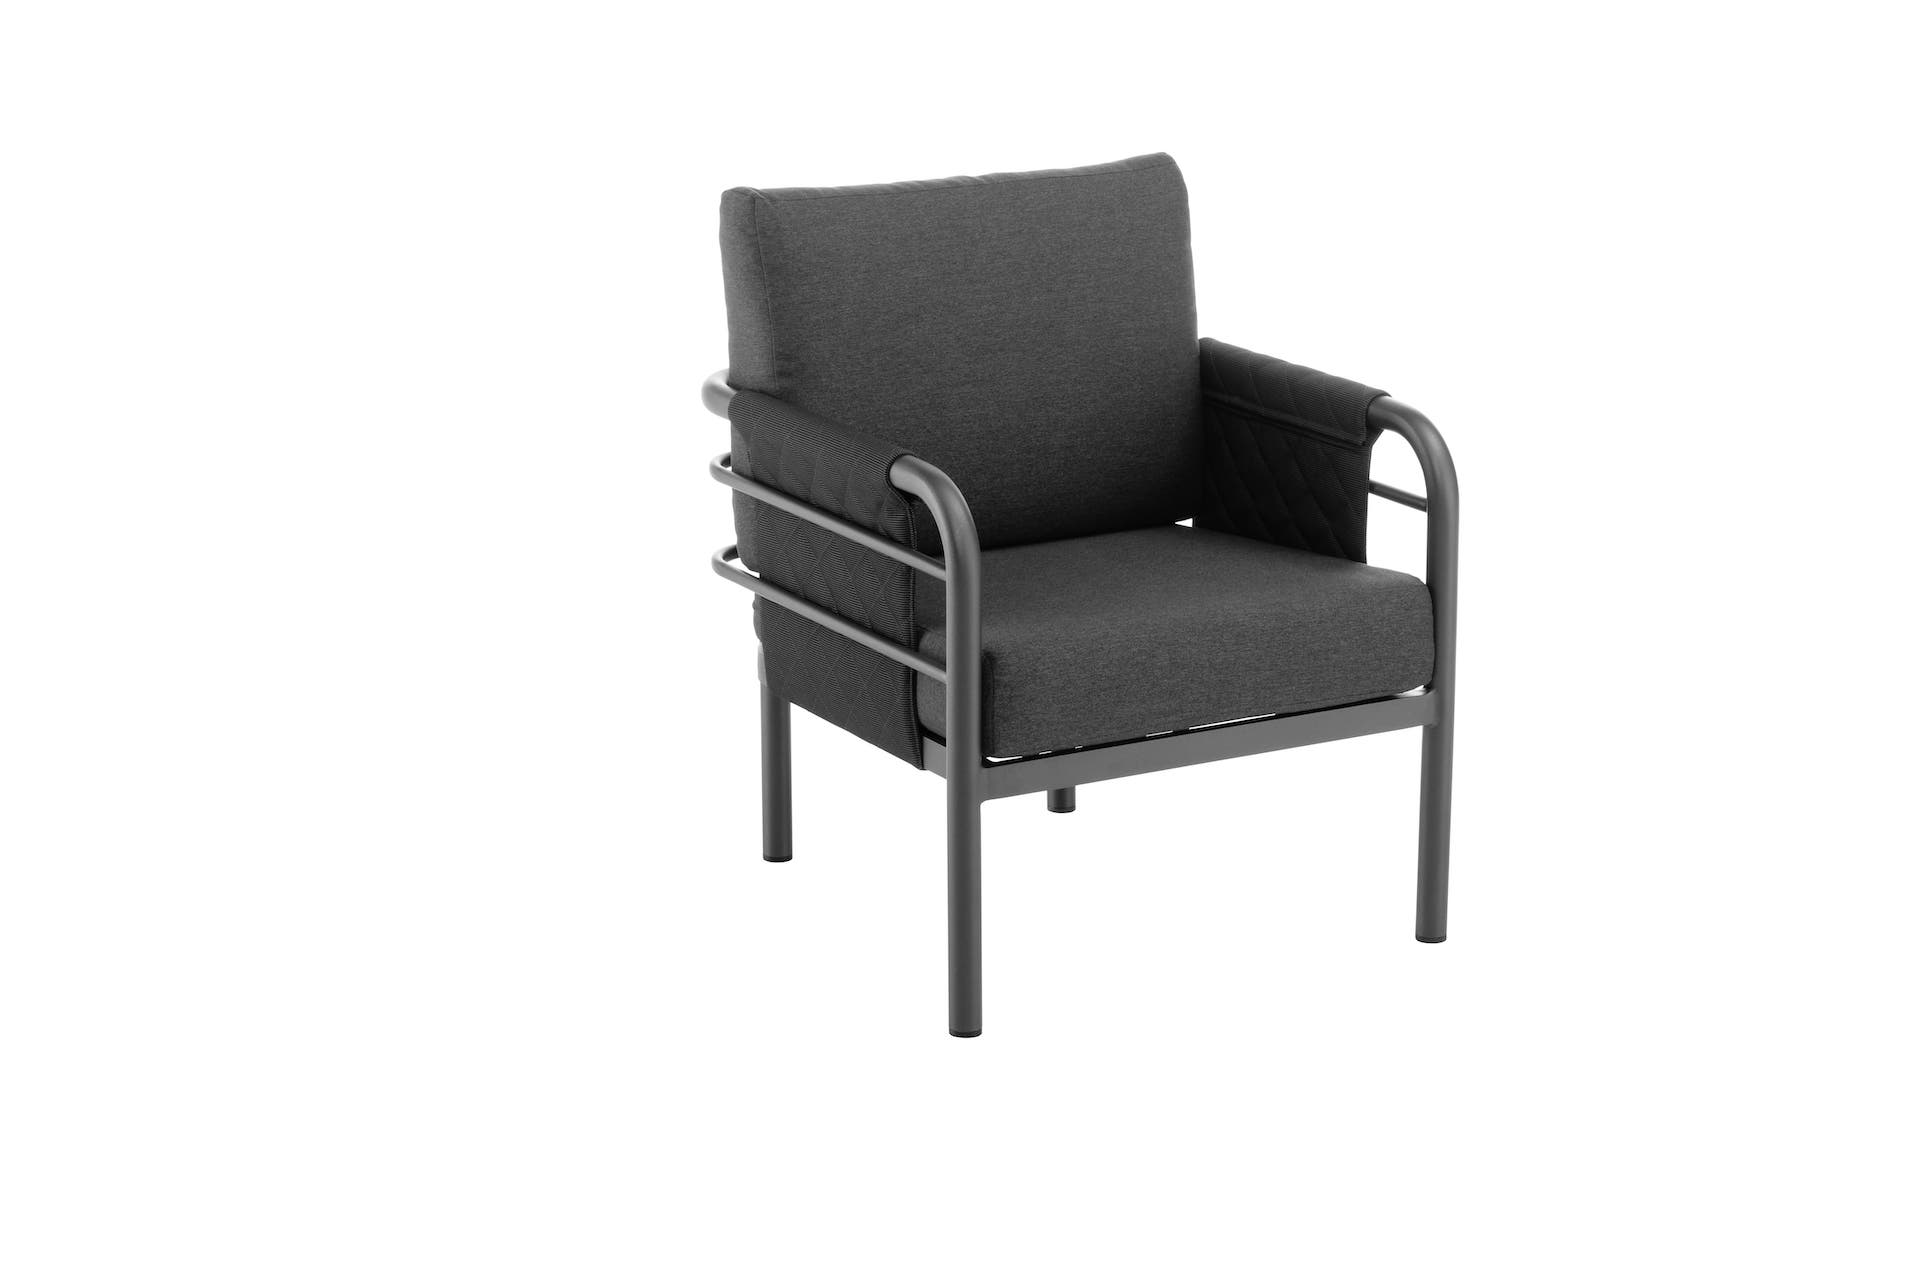 WIRE Casual Lounge Sessel